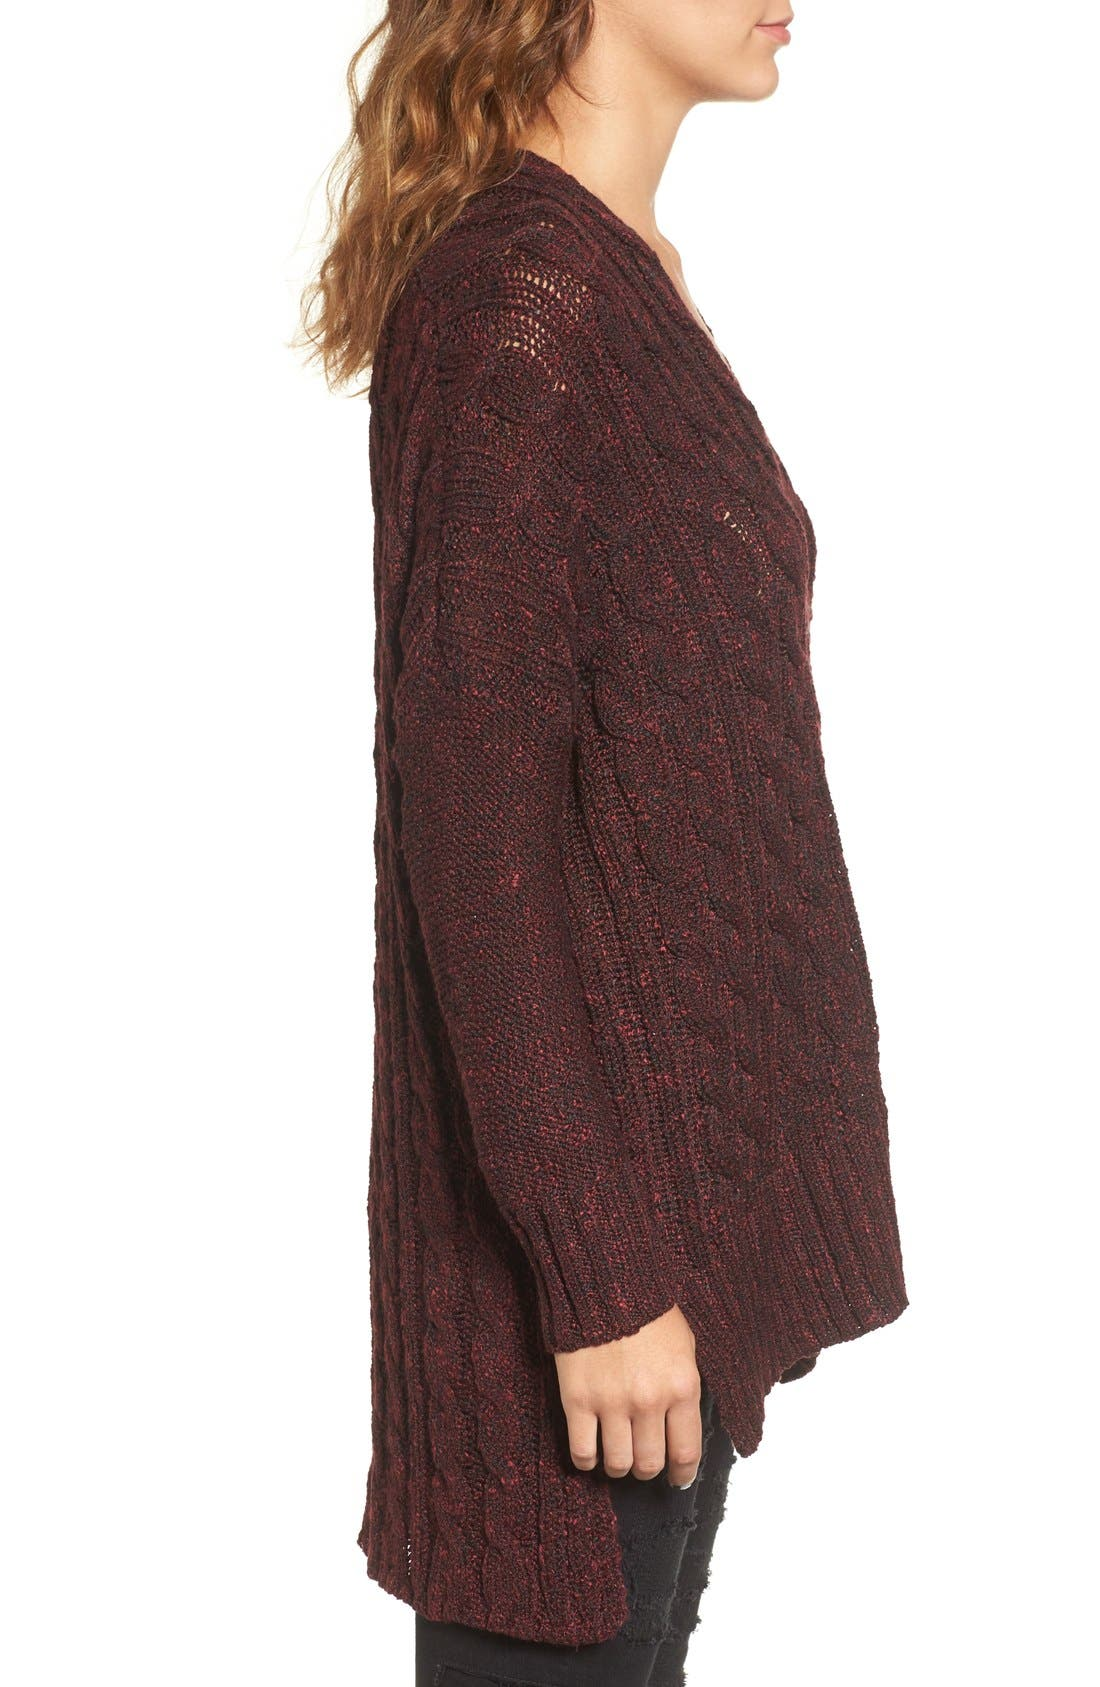 Marled Cable Knit Pullover,                             Alternate thumbnail 3, color,                             Burgundy/ Black Marl